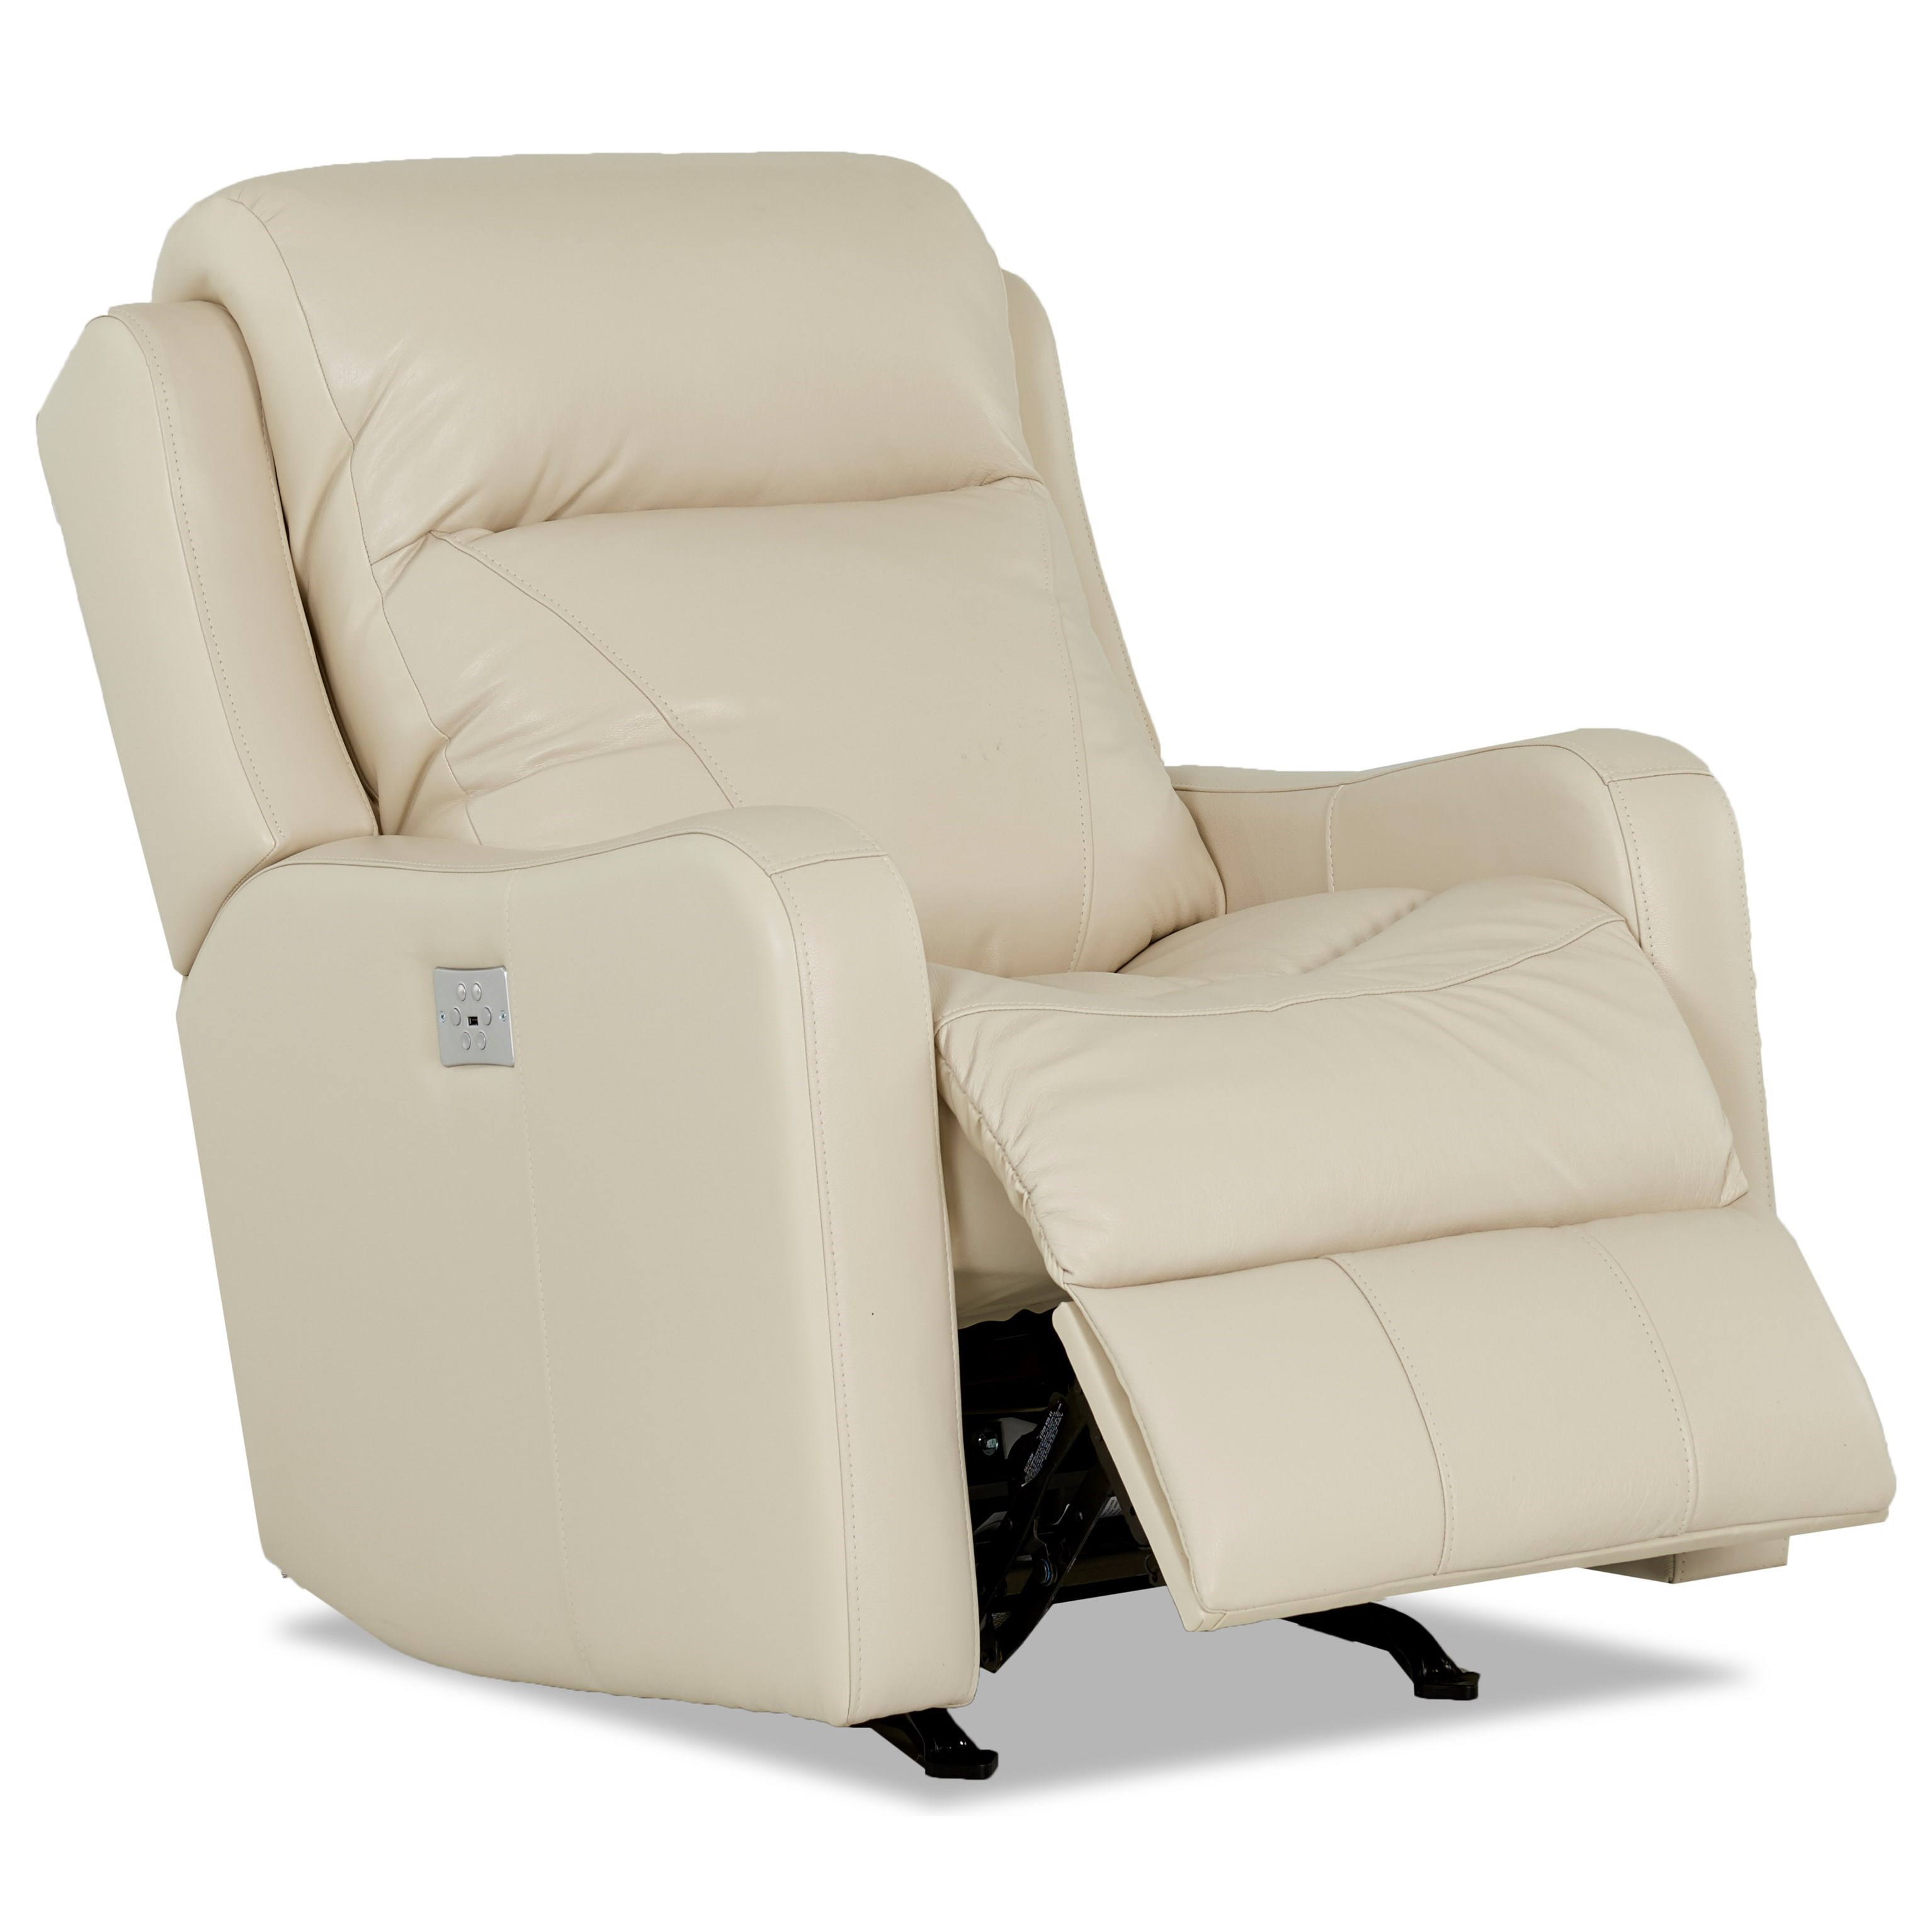 Recliners With Lumbar Support Img Golf Recliner Chair And